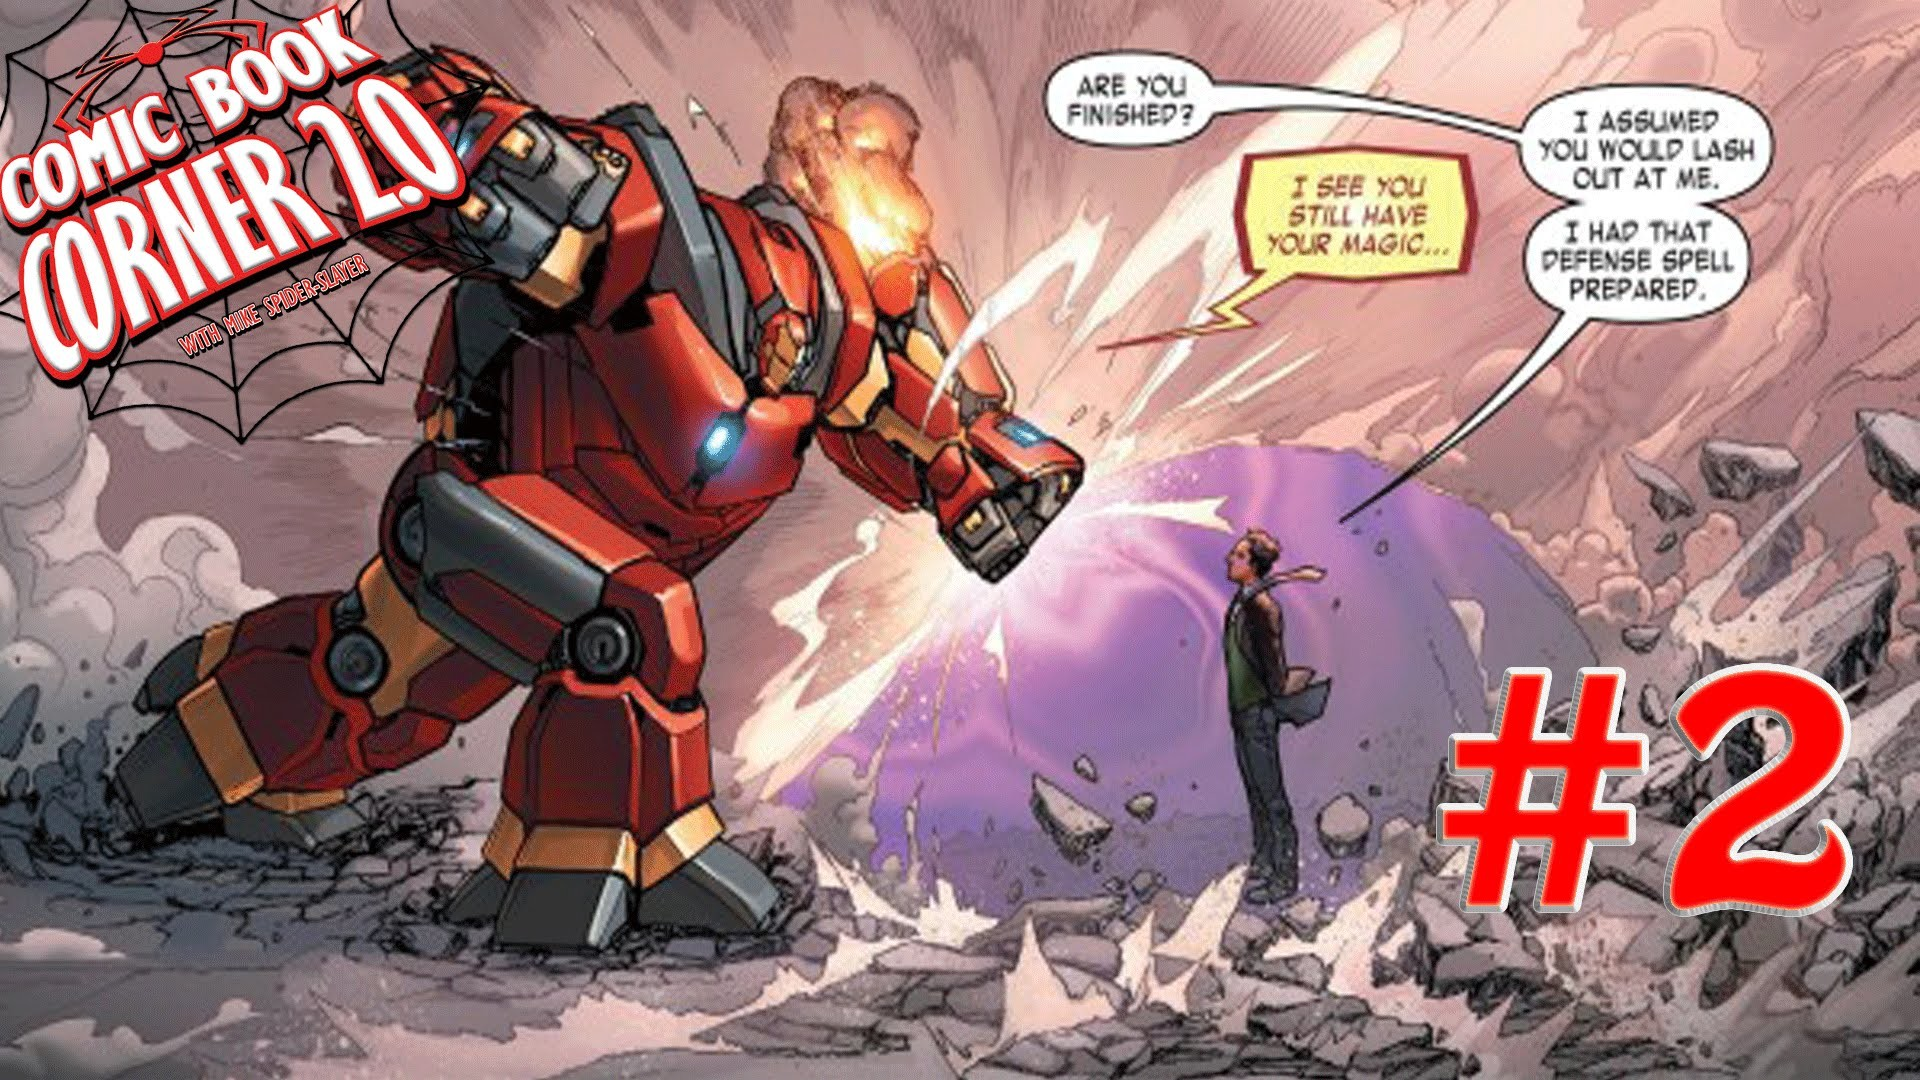 Res: 1920x1080, Invincible Iron Man Backgrounds on Walls Cover